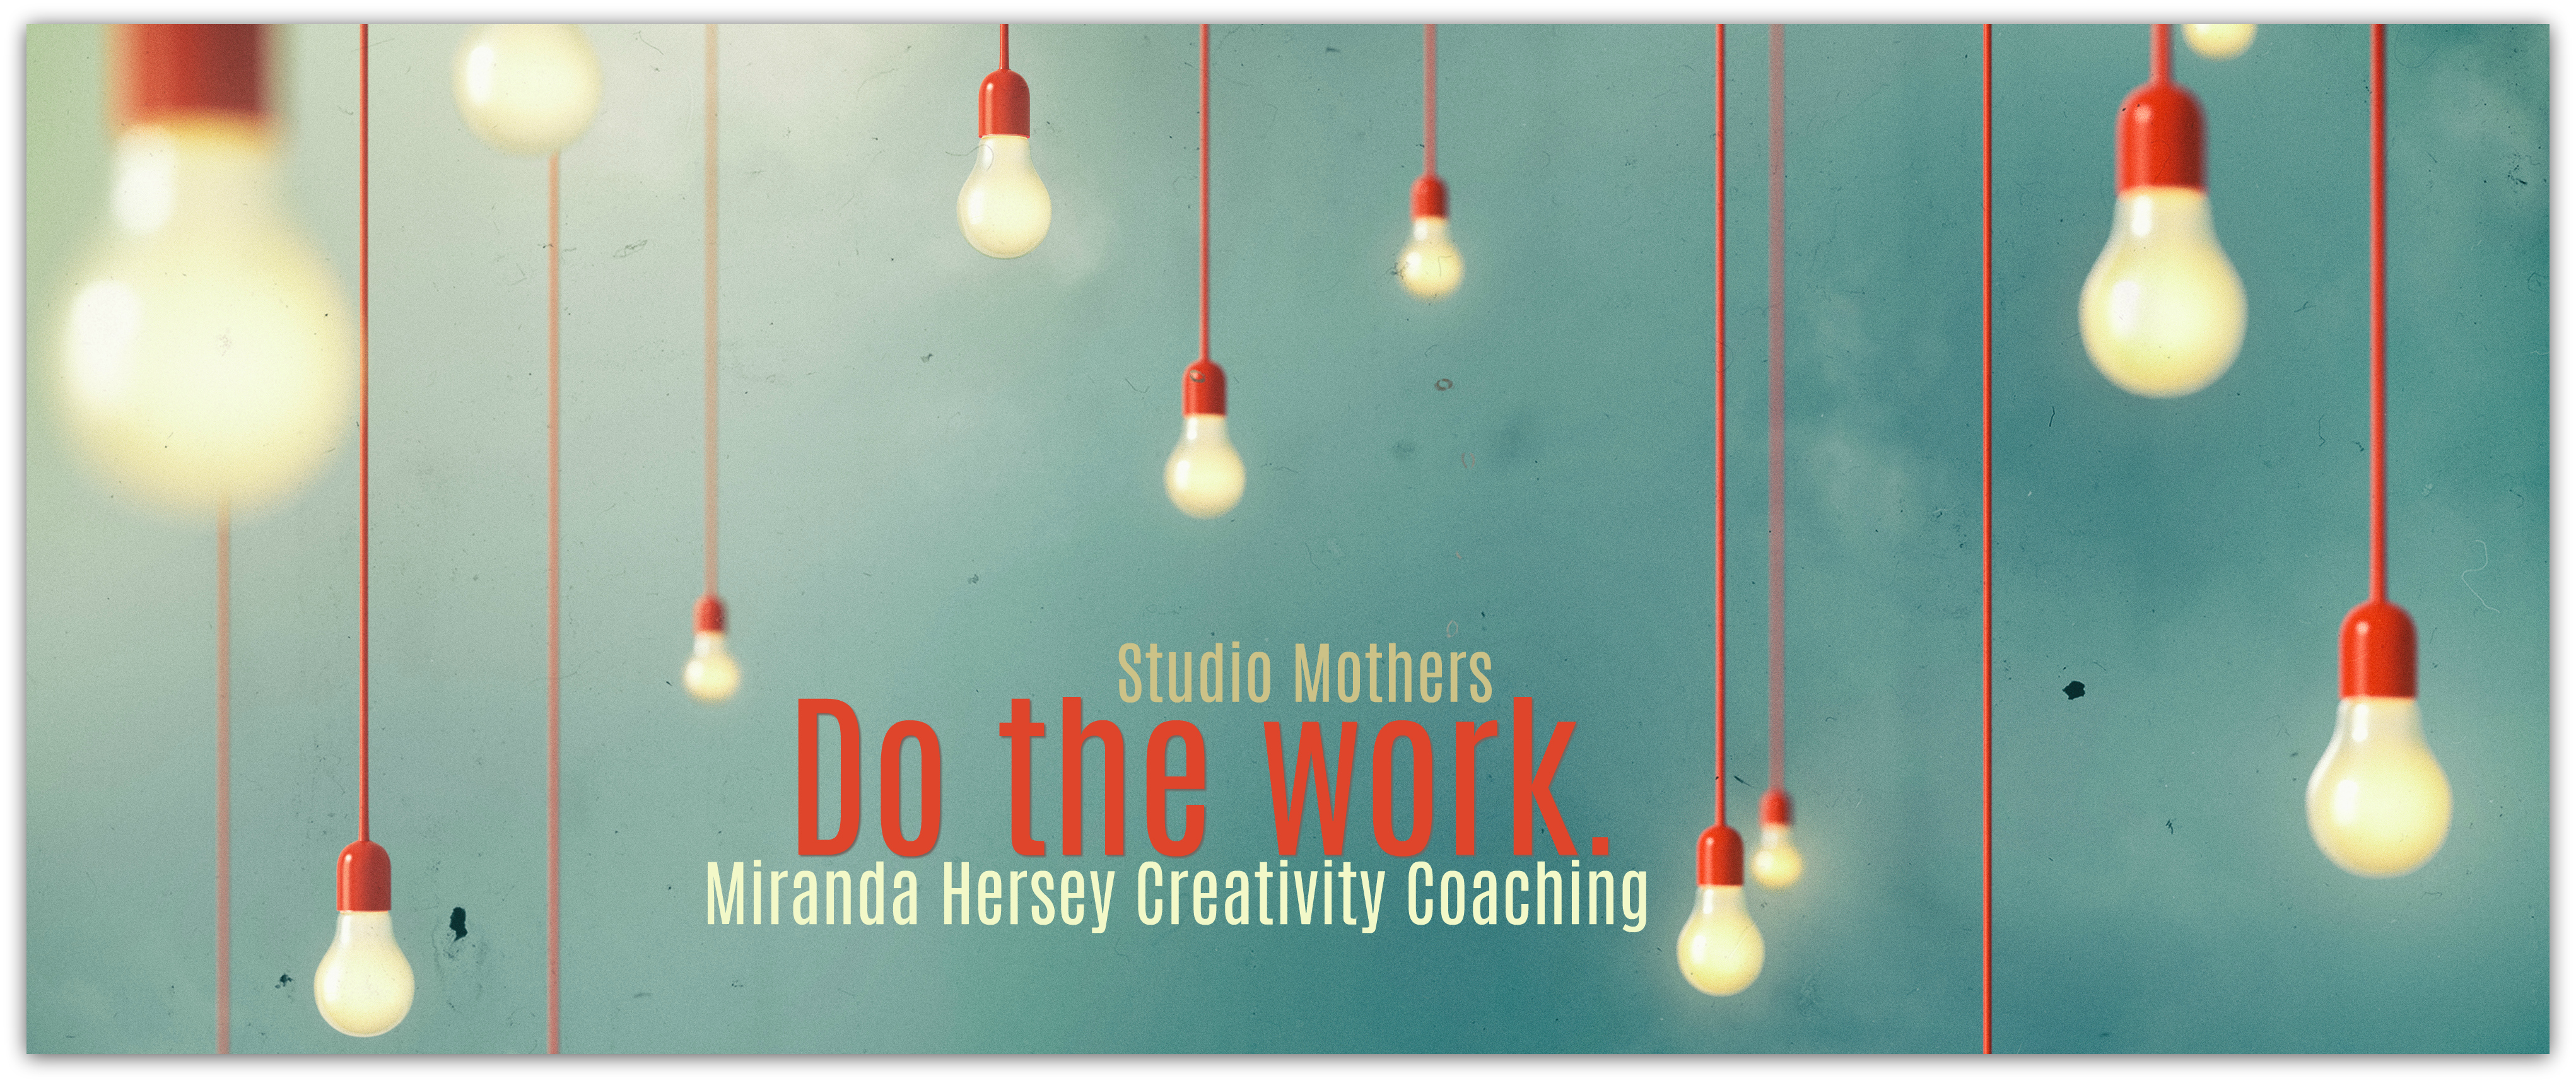 Studio Mothers: Life & Art